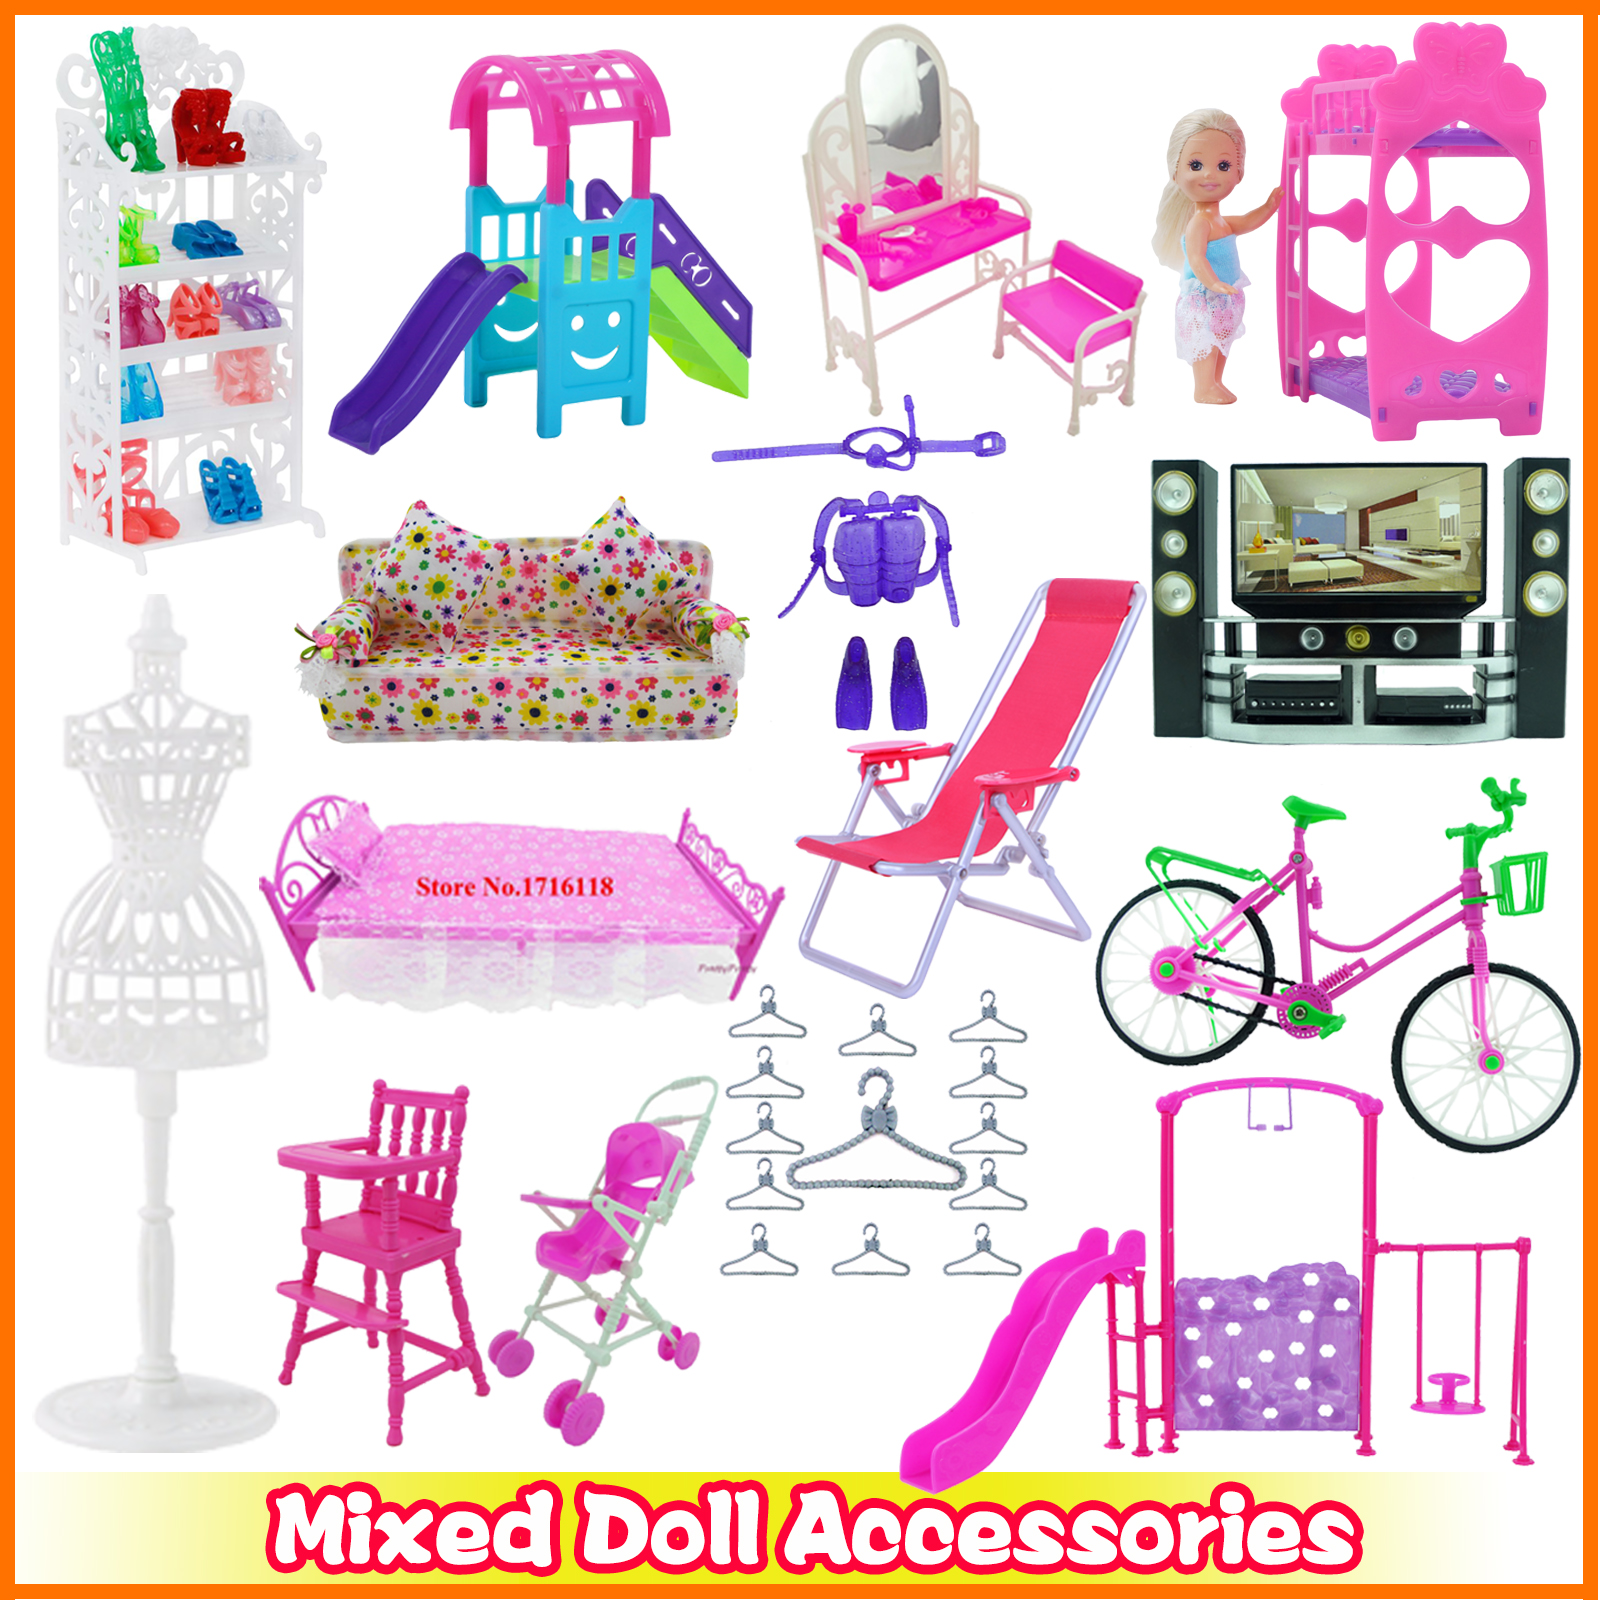 Mixed Doll Accessories Shoes Rack Cute Sofa Beach Chair Pink Bed Mini Dresses Boots Hangers 1:12 Miniature Furniture for Barbie